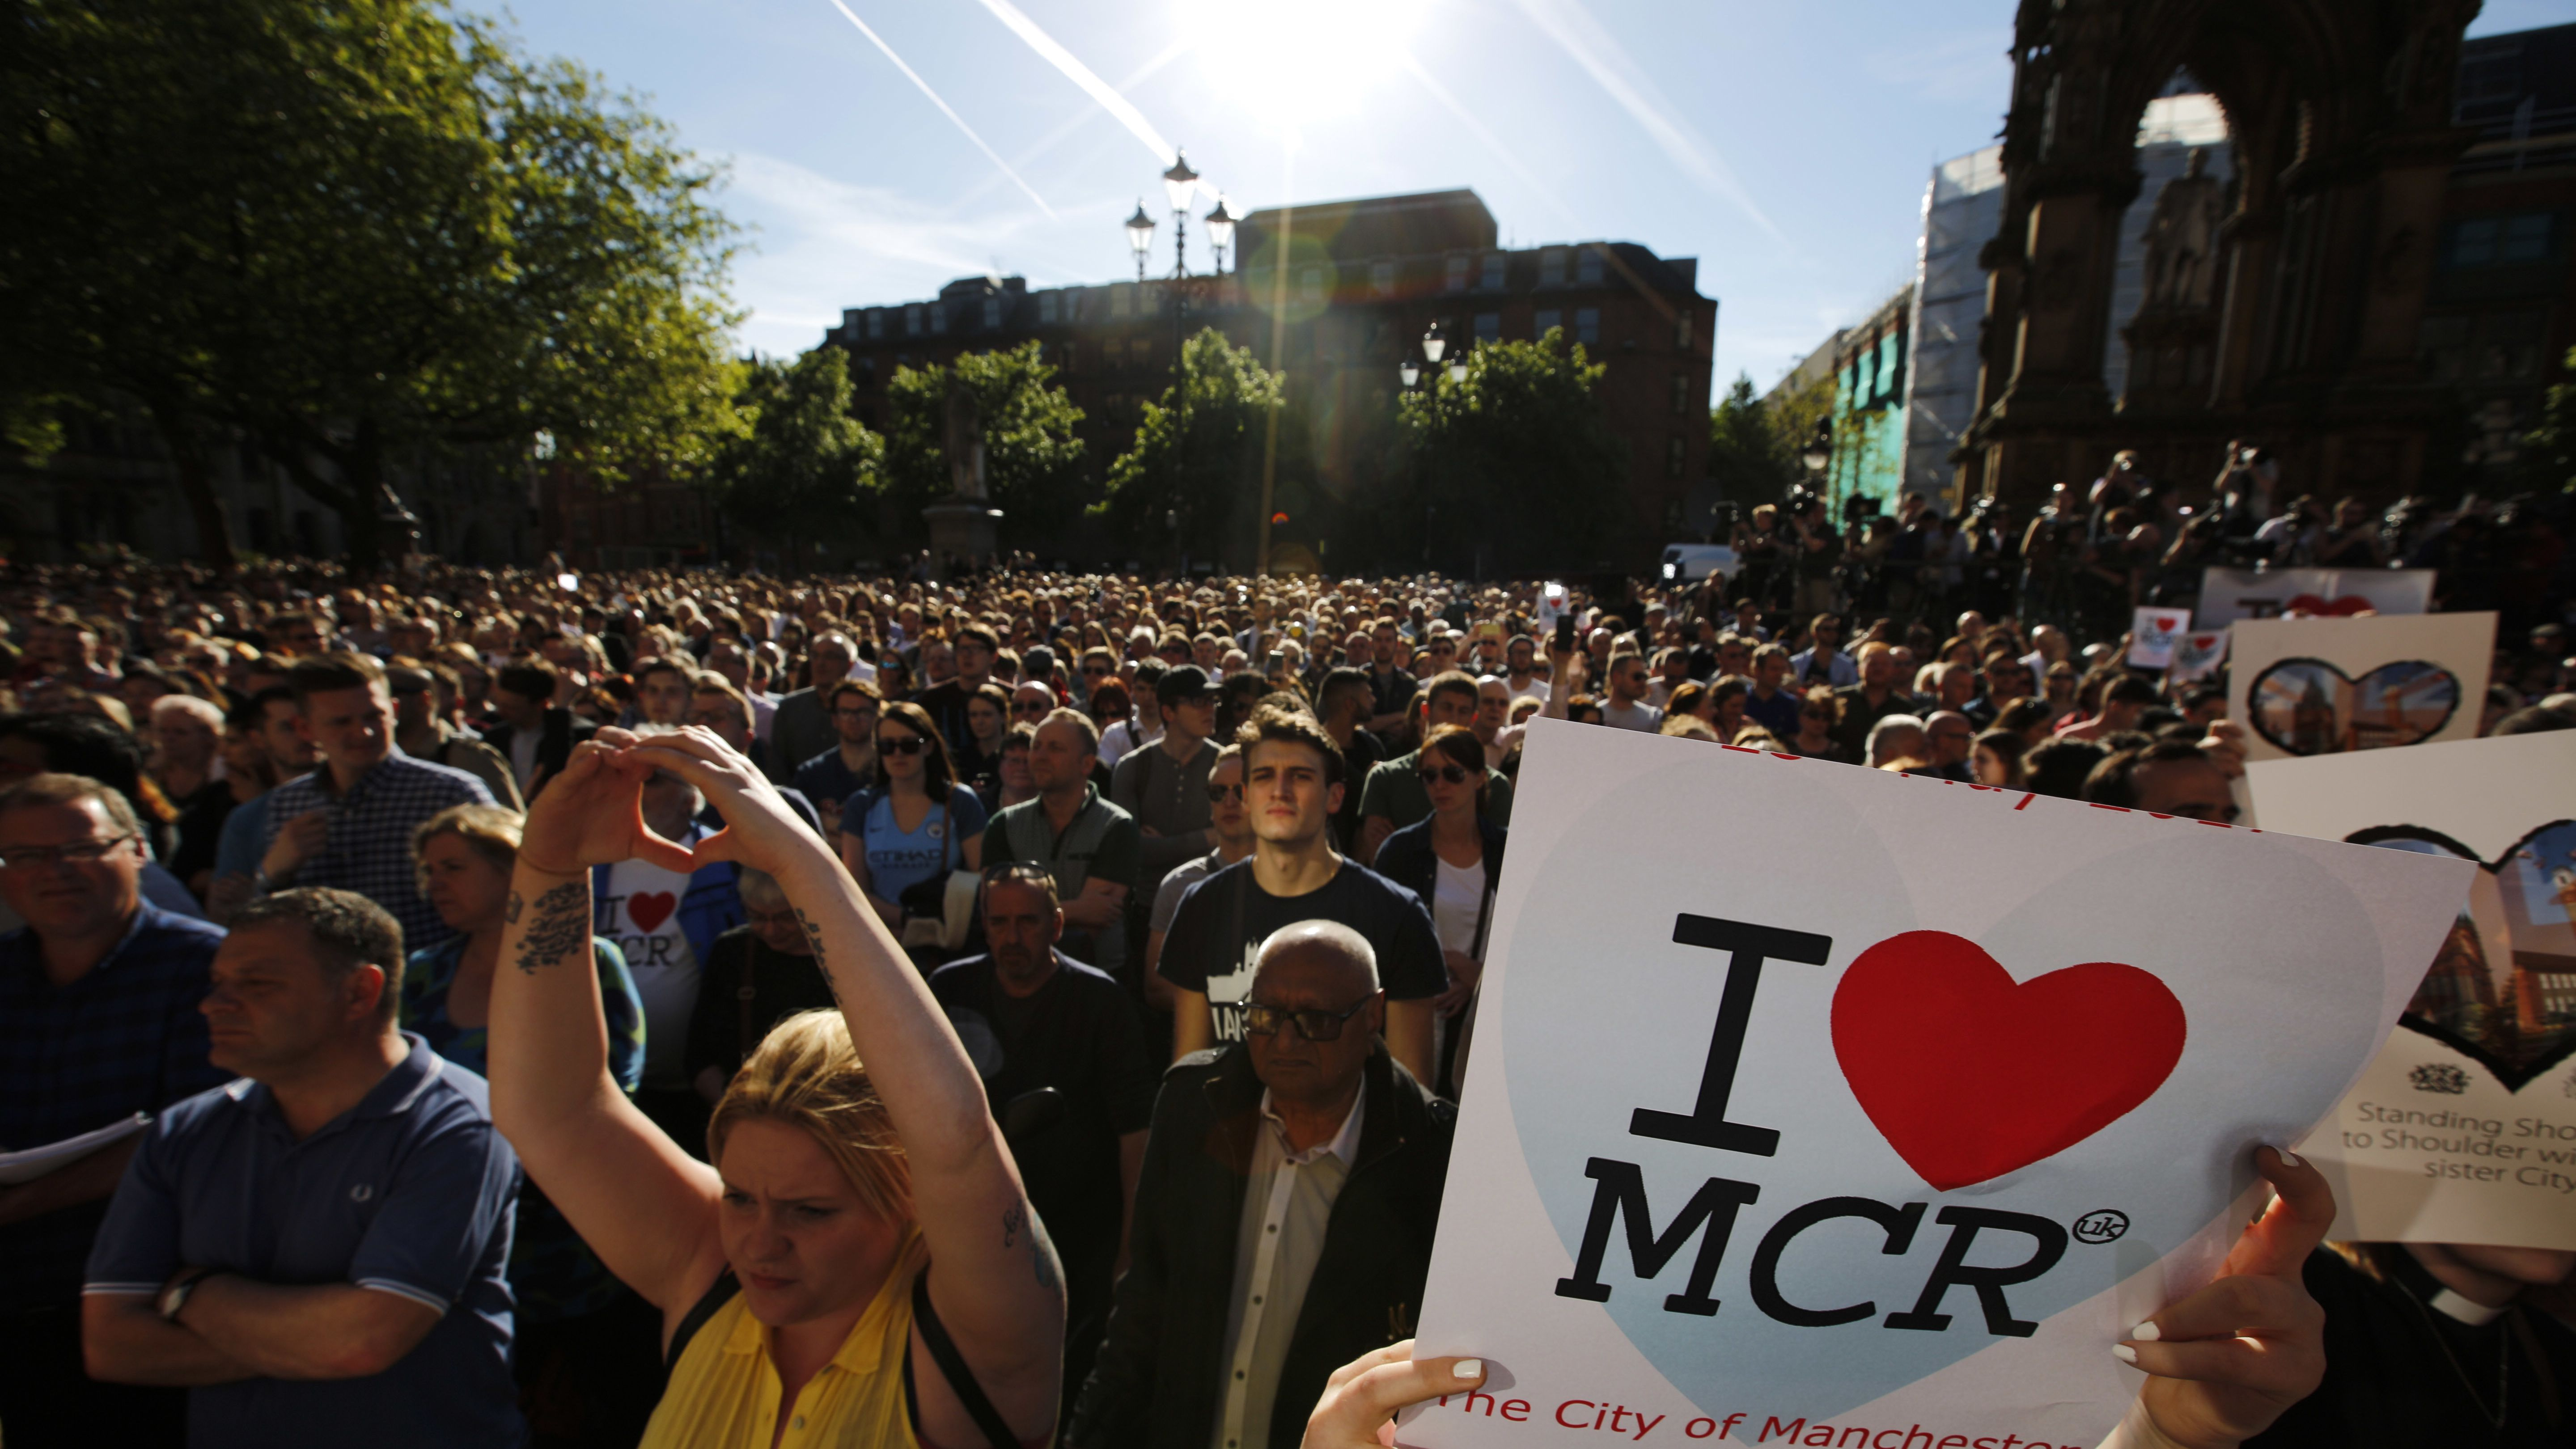 Crowds gather for a vigil in Albert Square, Manchester, England, Tuesday May 23, 2017, the day after the suicide attack at an Ariana Grande concert that left 22 people dead as it ended on Monday night.  (AP Photo/Emilio Morenatti)